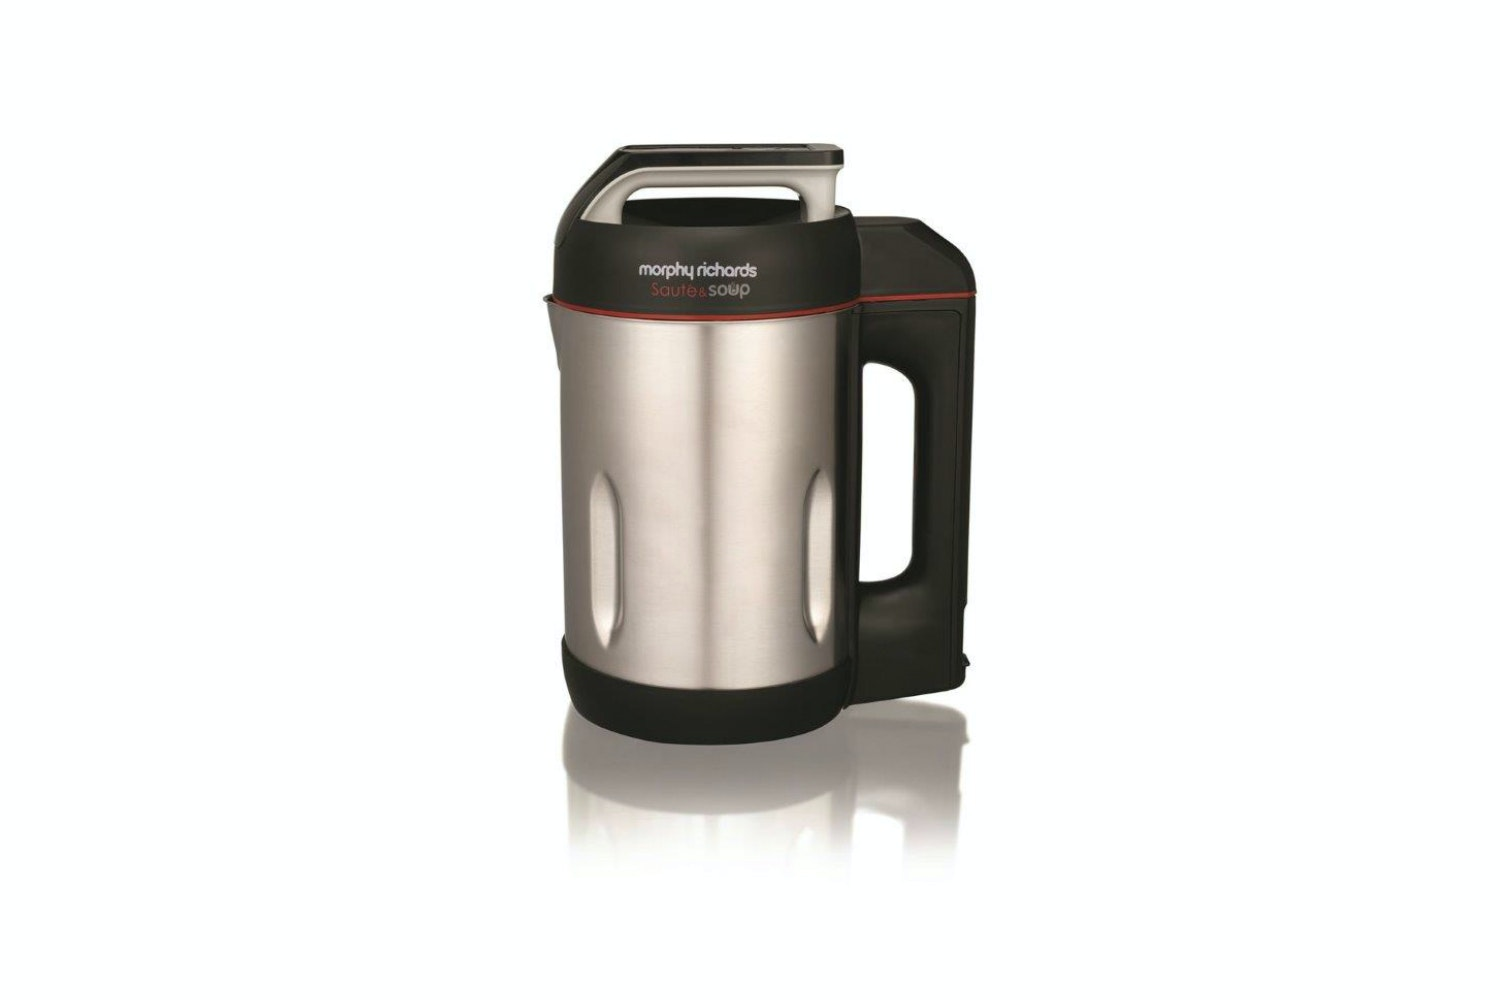 Morphy Richards Sauté & Soup Maker 501014